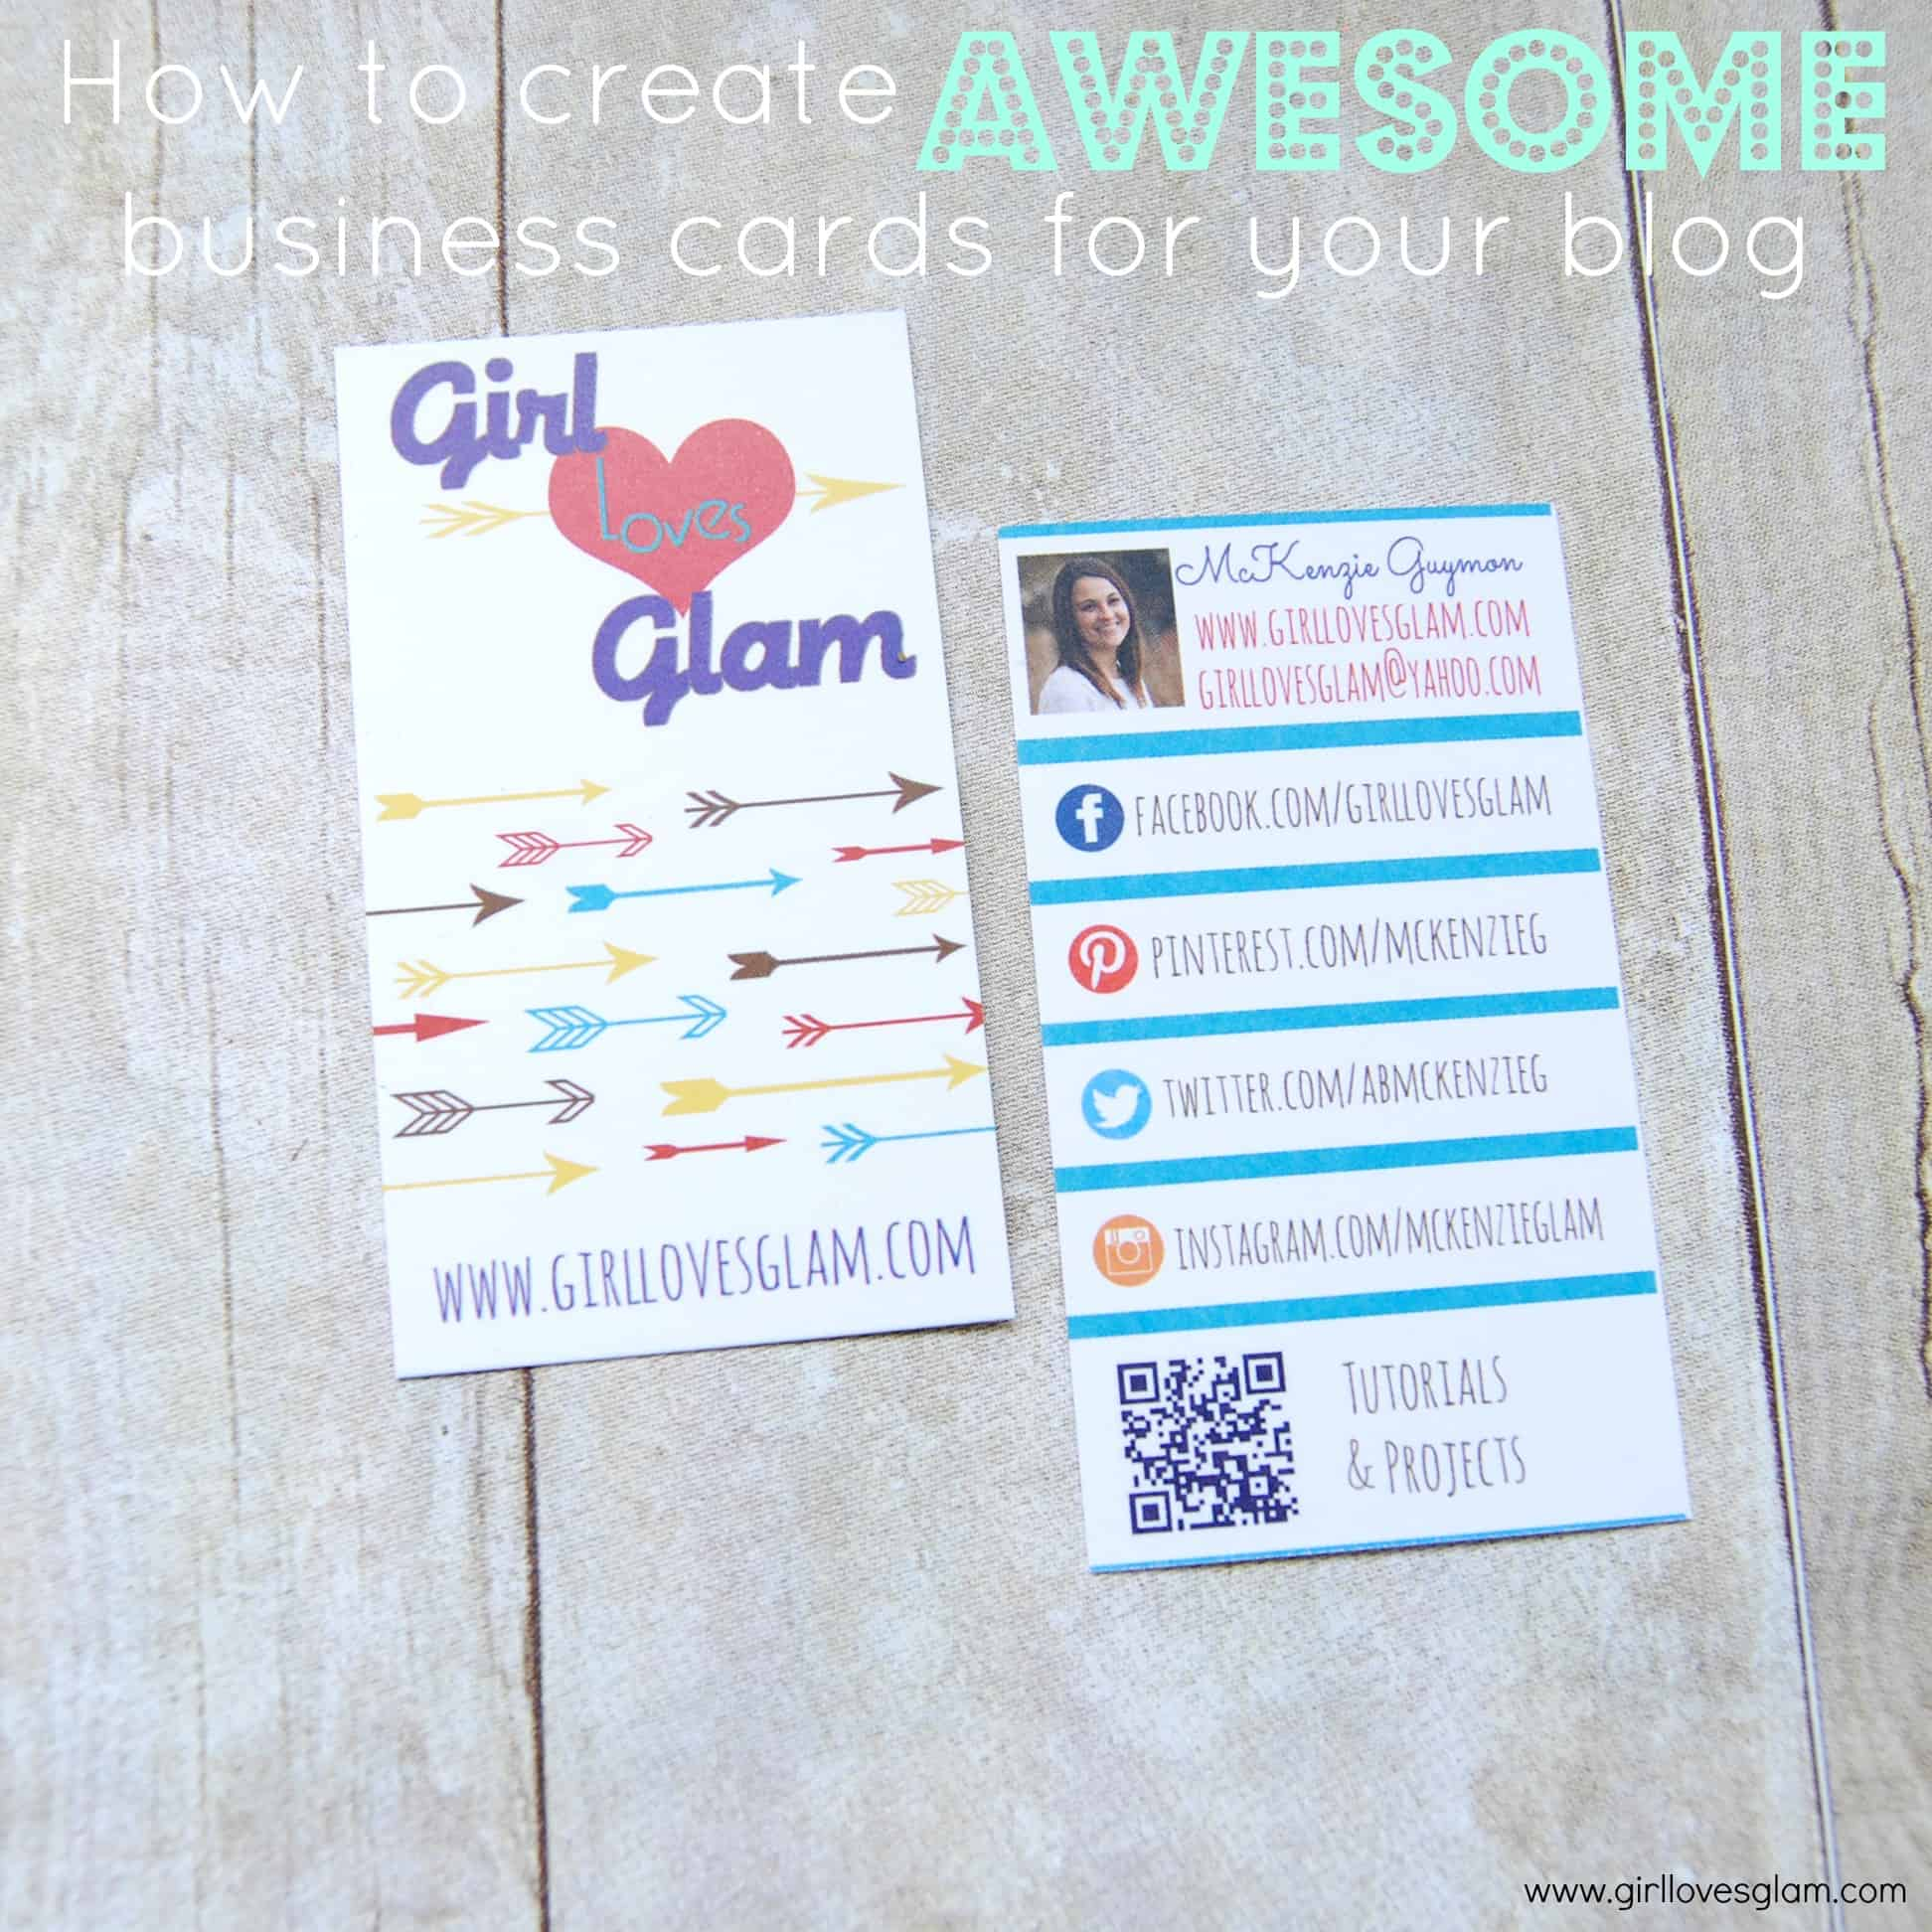 How to create AWESOME business cards for your blog - Girl Loves Glam